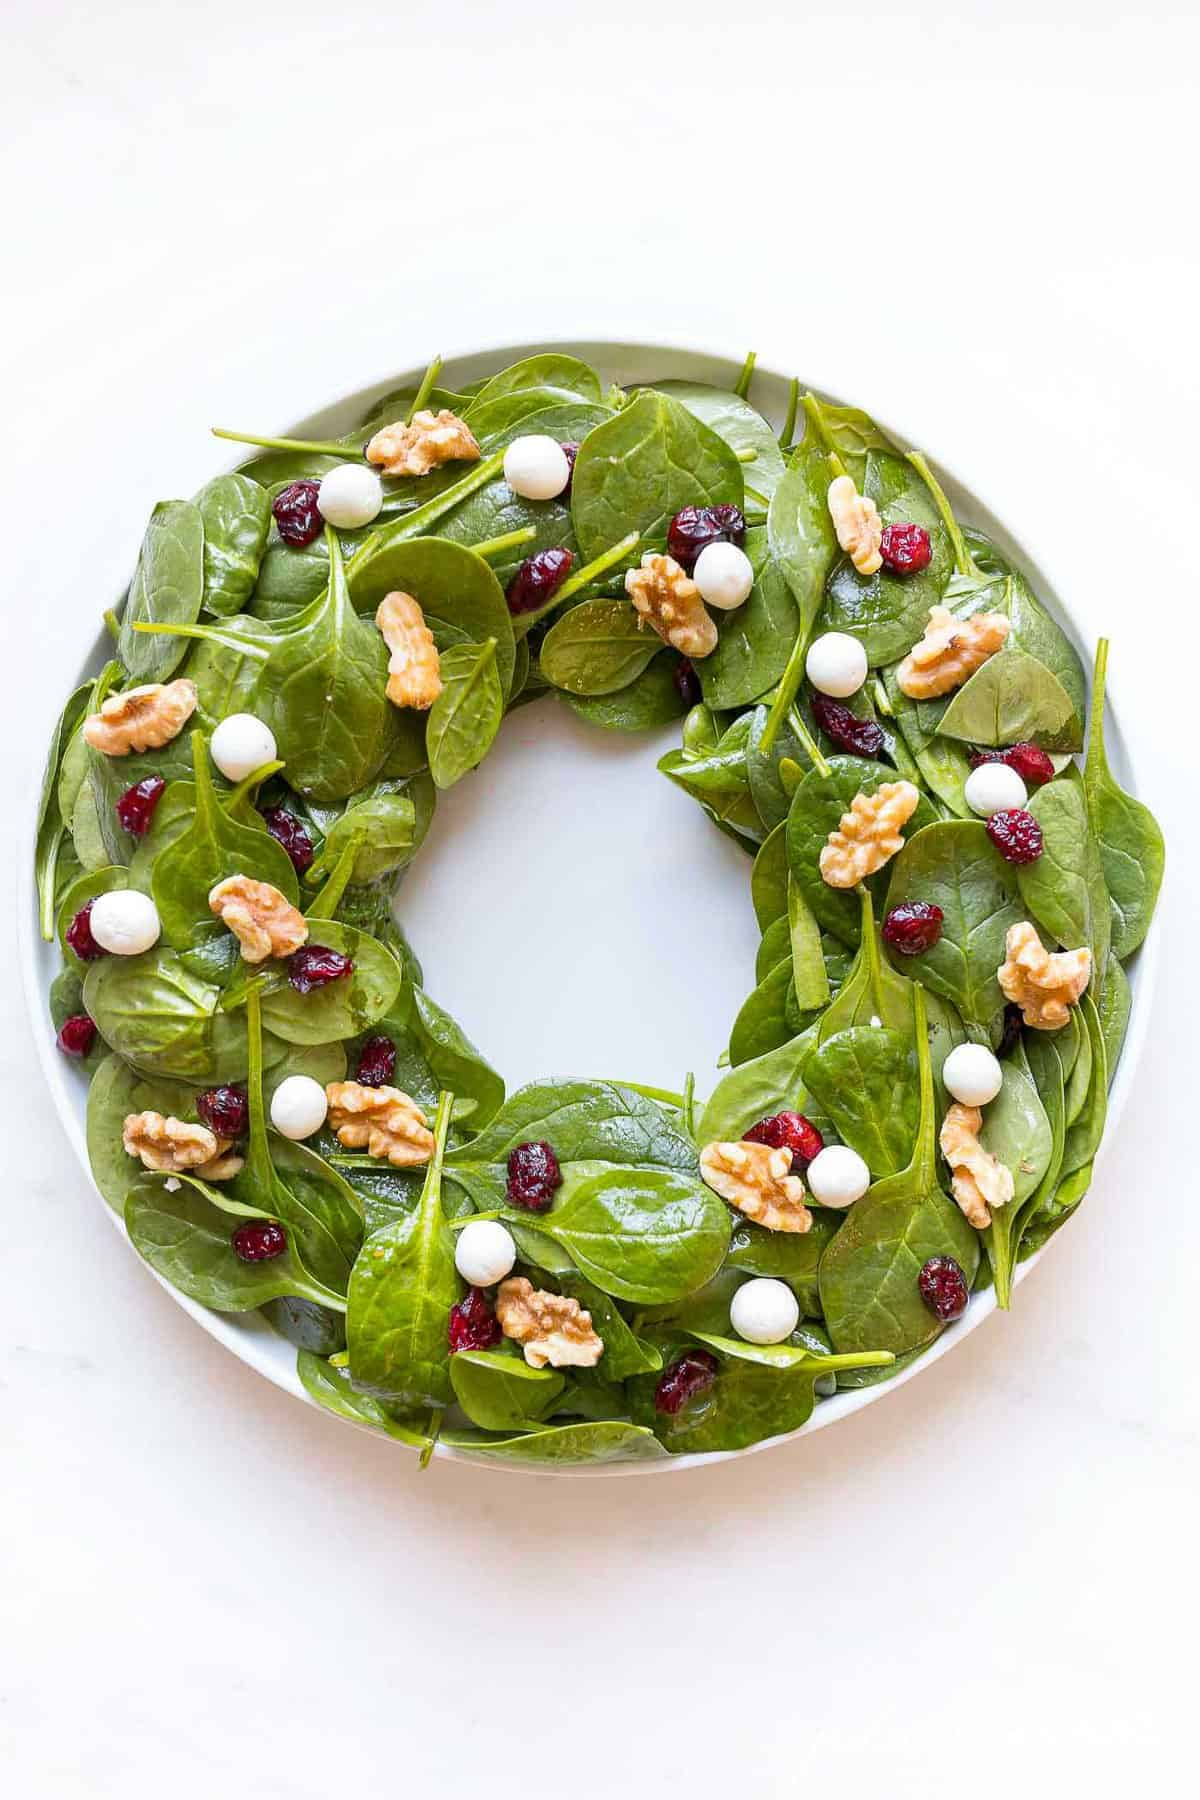 christmas salad in shape of a wreath with goat cheese cranberries and nuts to look like berries